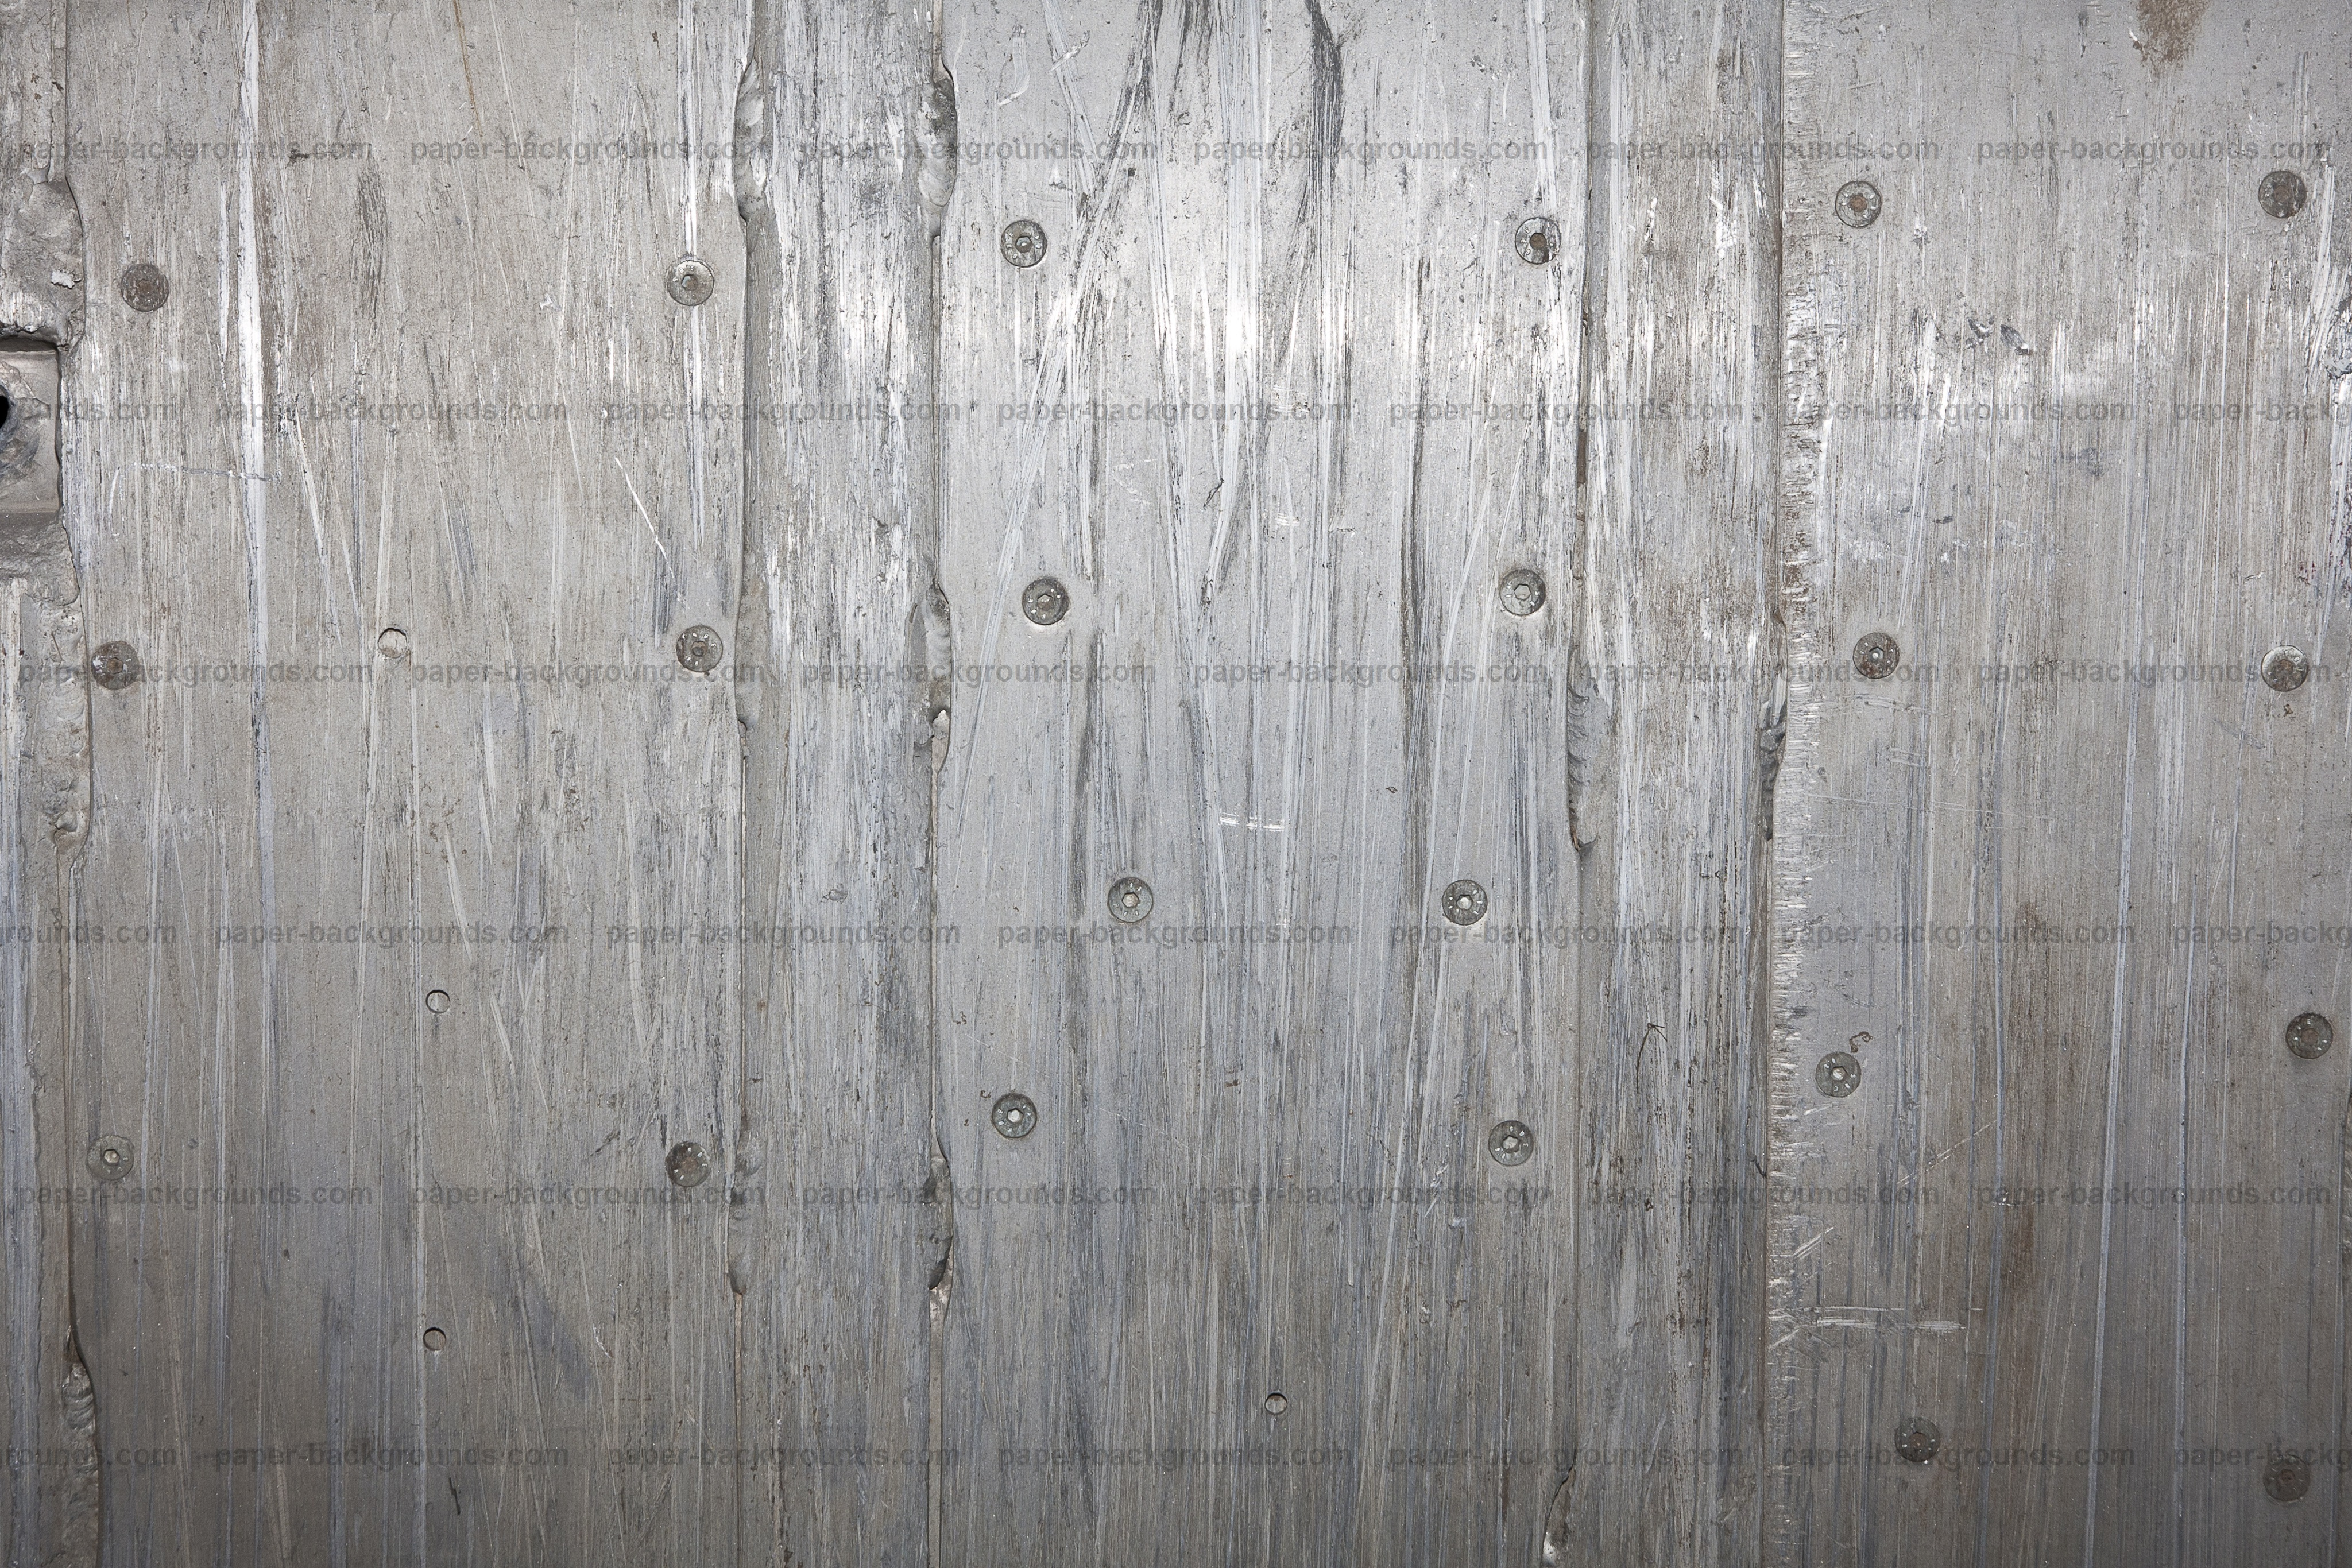 Paper Backgrounds | scratched-metal-plate-texture